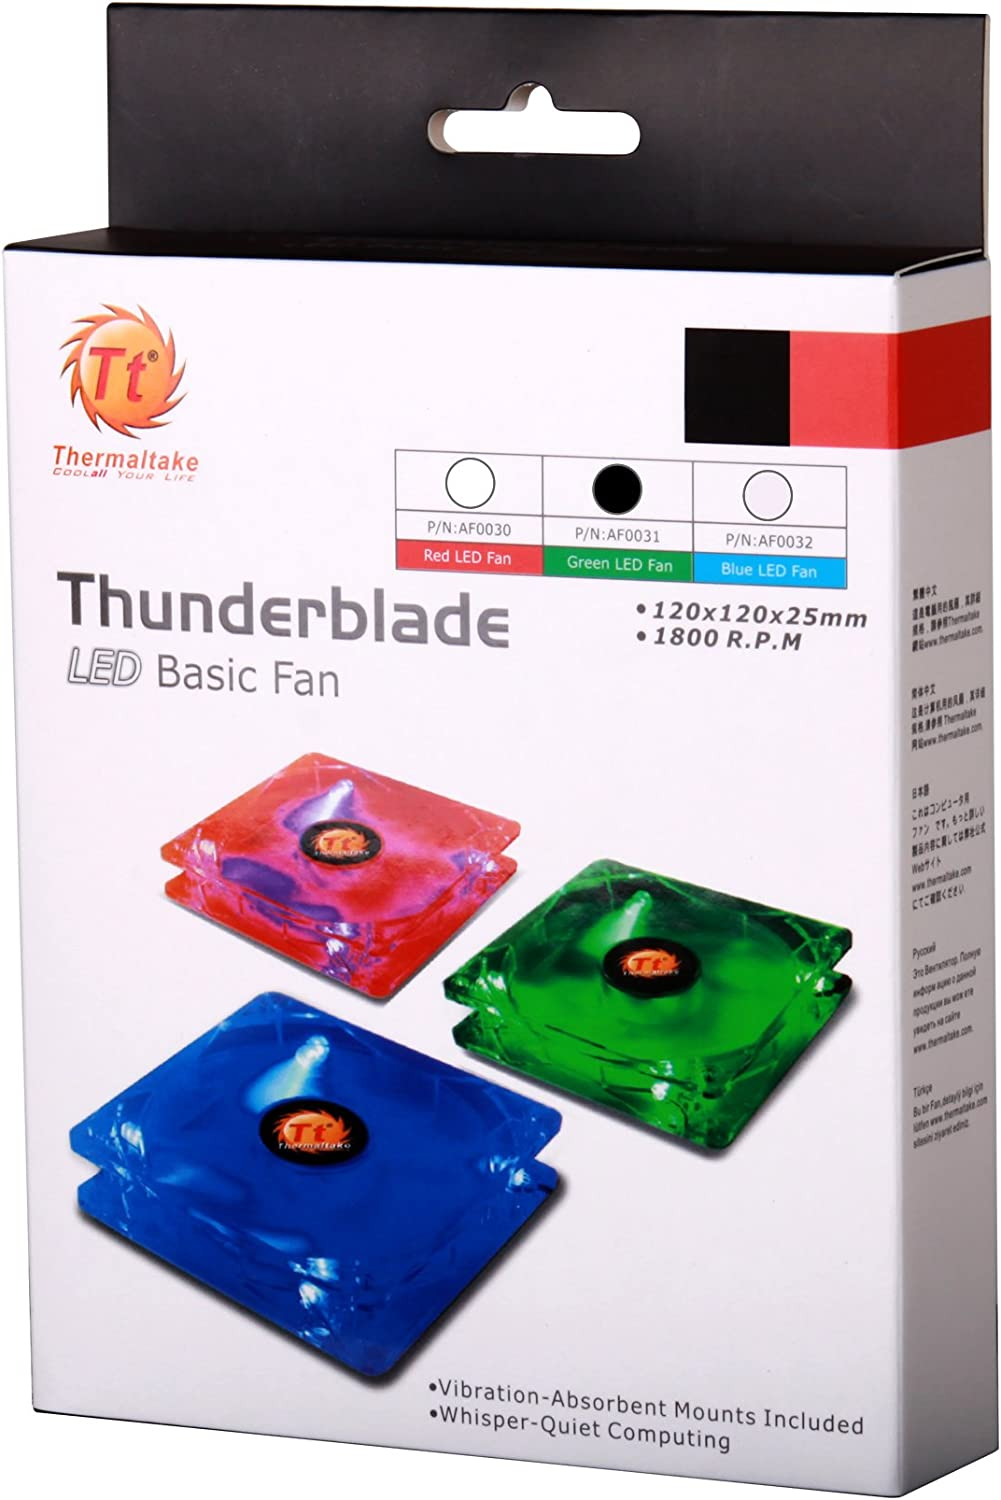 Thermaltake Thunderblade 120 mm 4Led Case Fan 3 and 4 Pin AF0031 Green